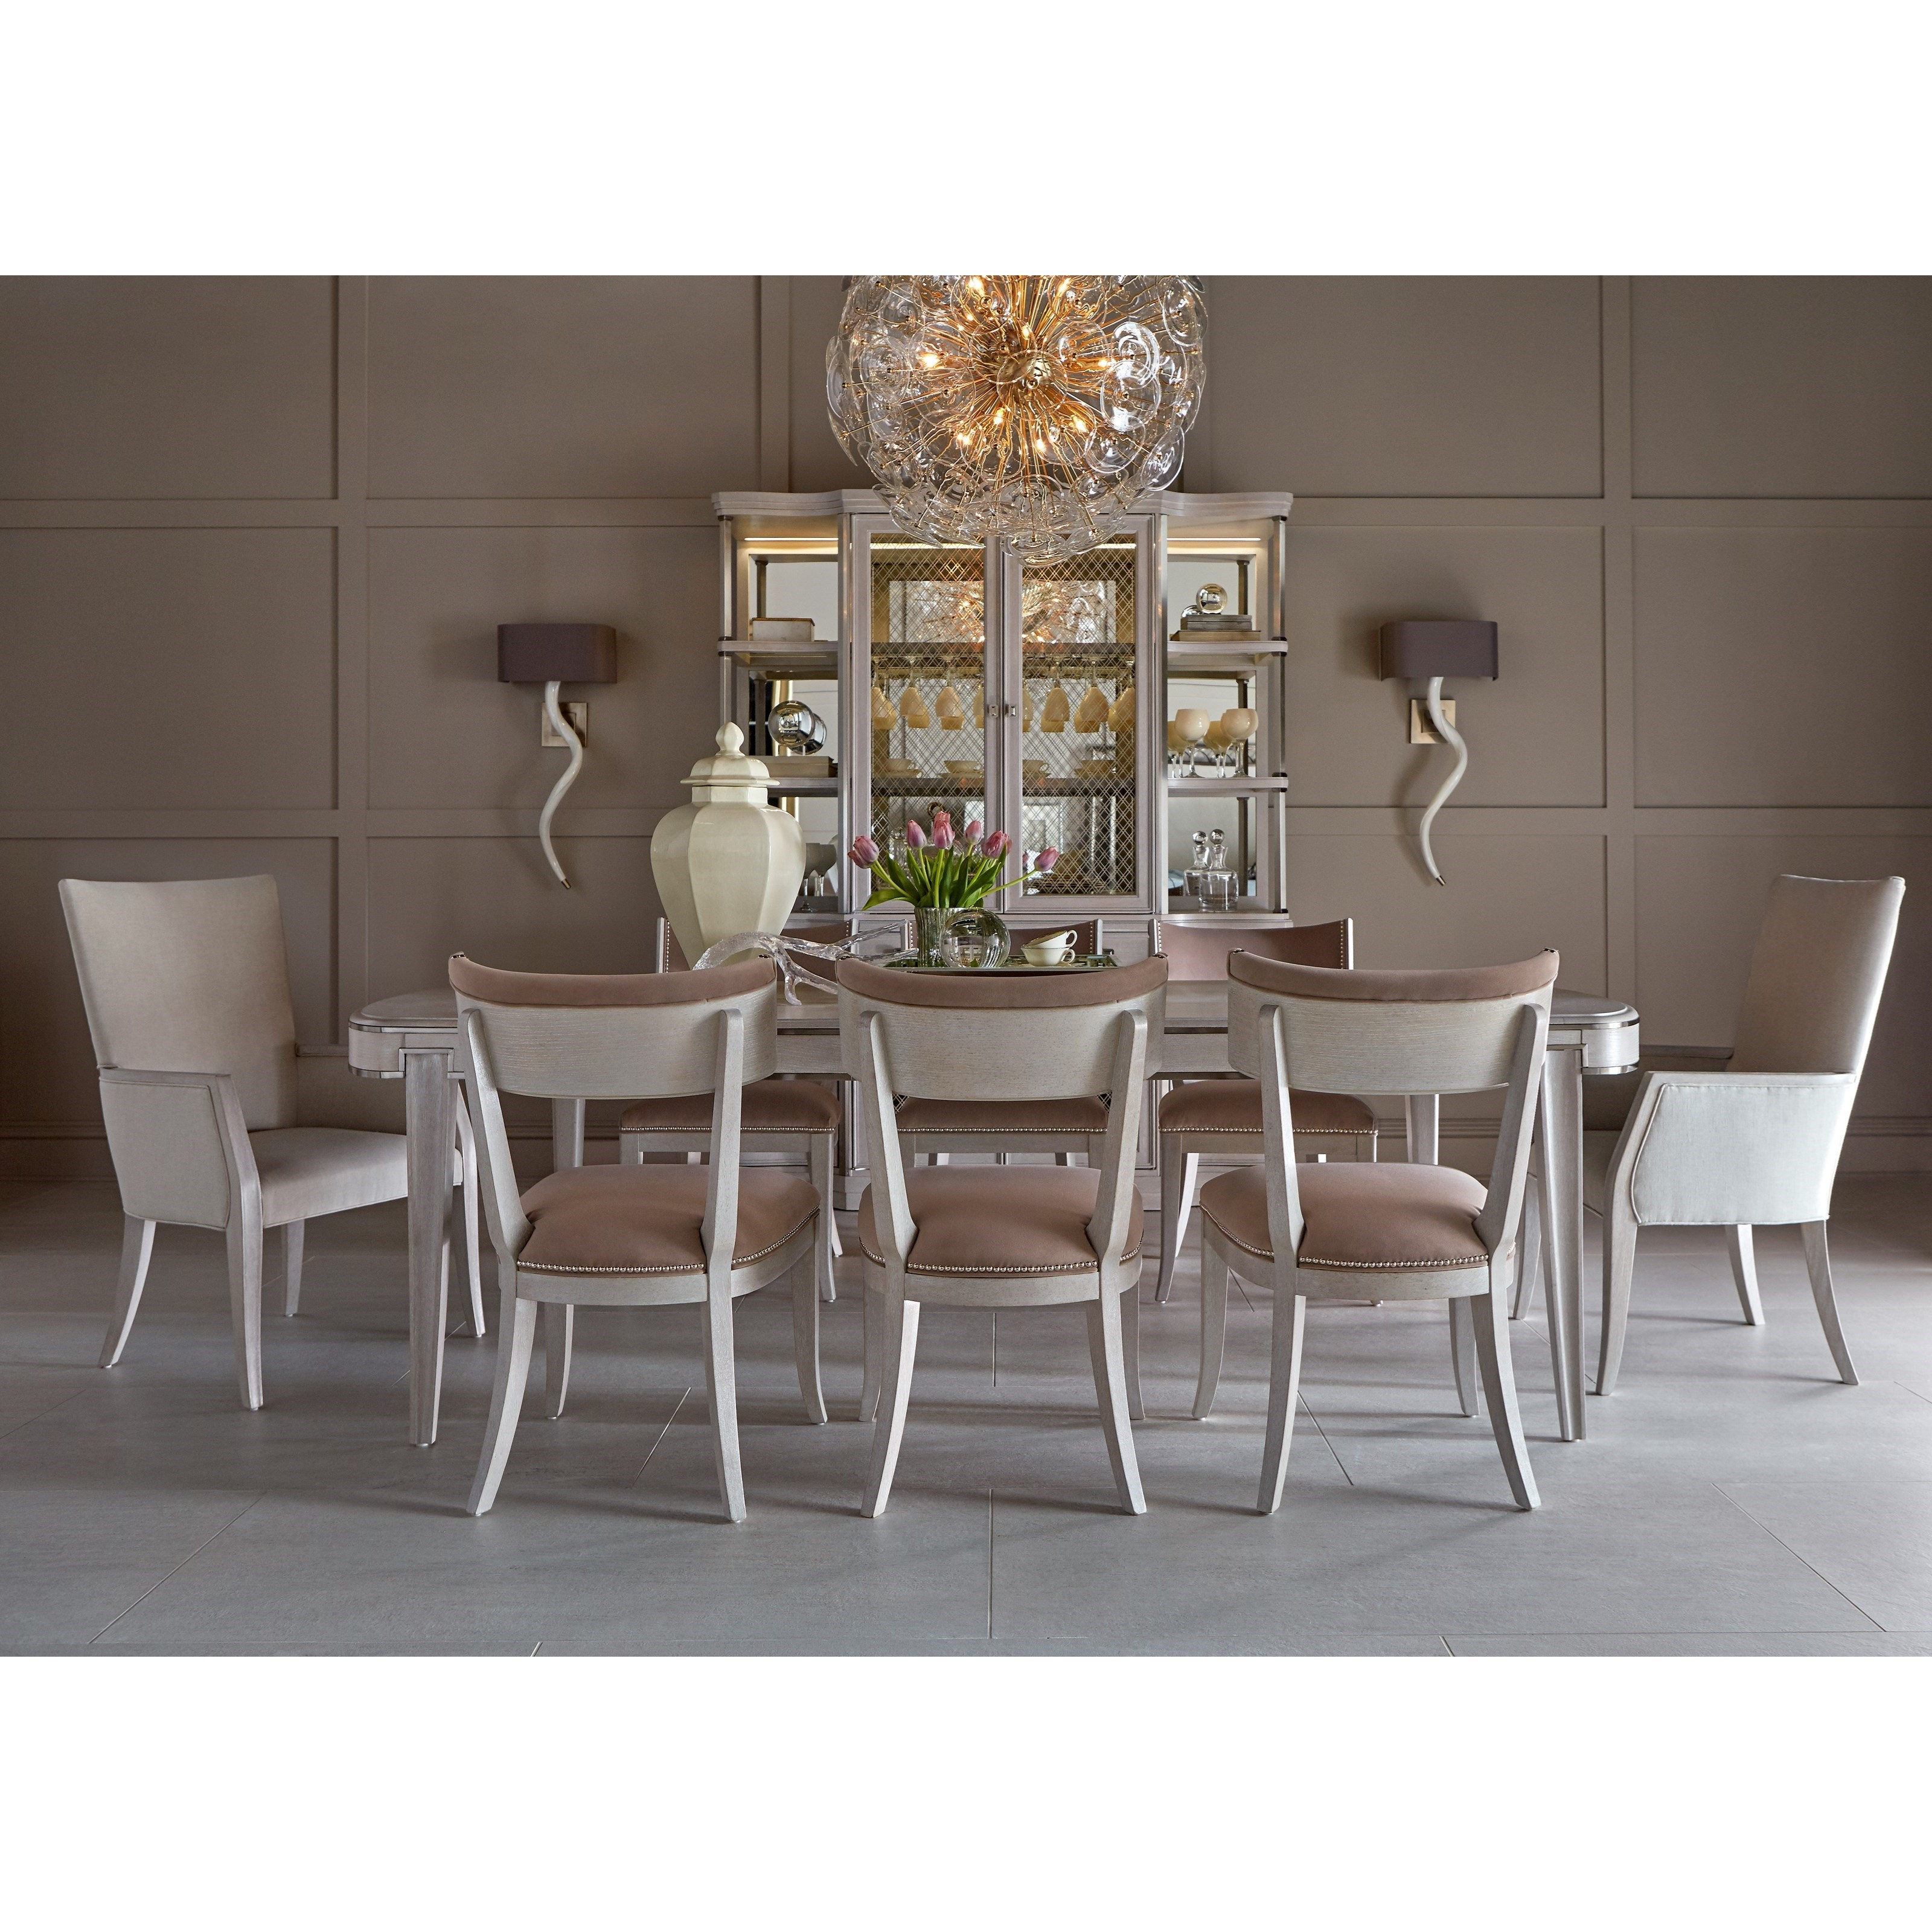 La Scala 7 Piece Dining Set by A.R.T. Furniture Inc at Baer's Furniture